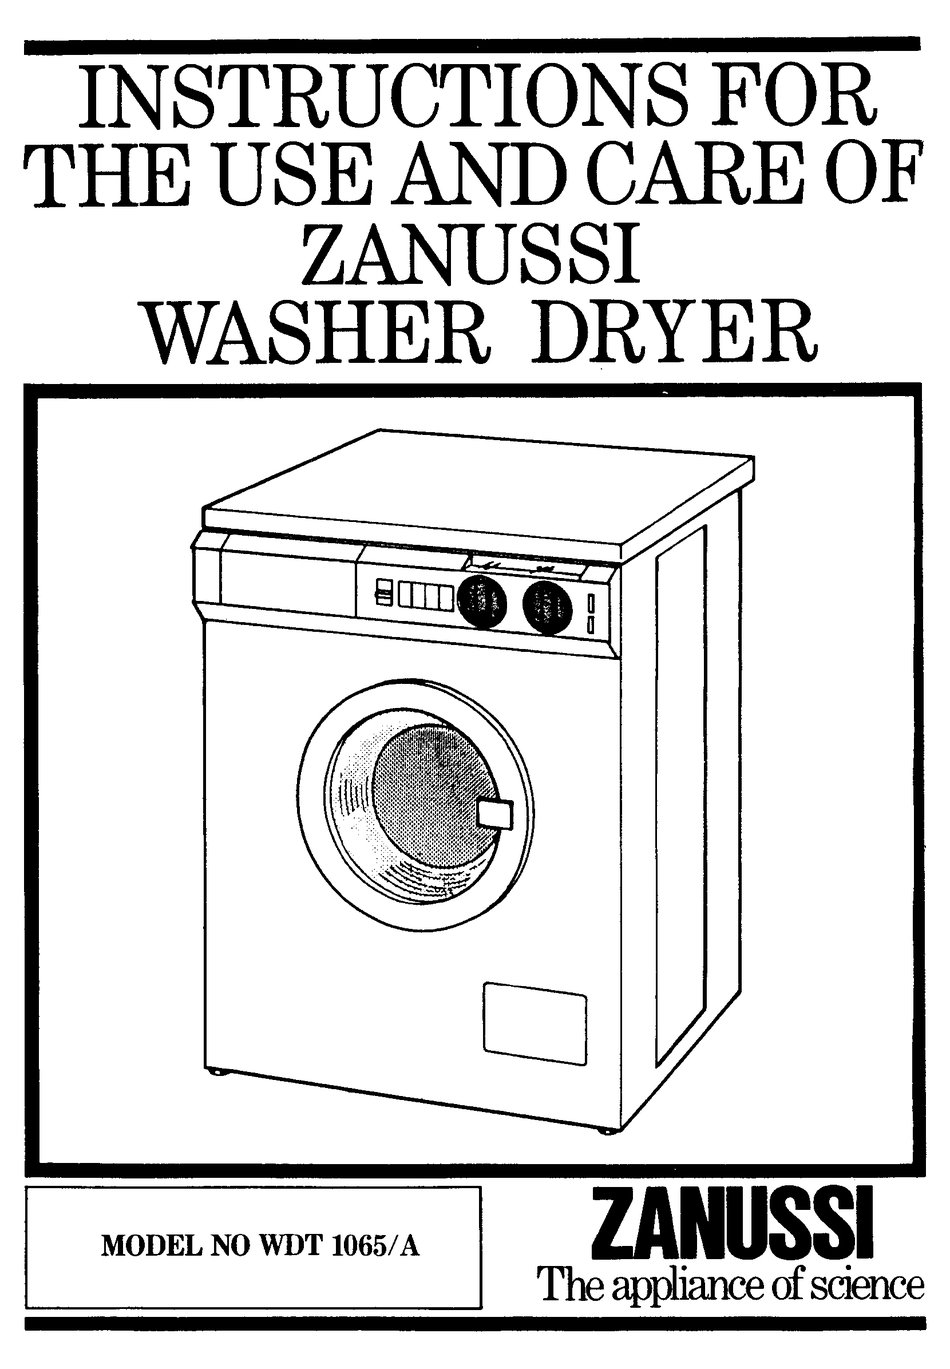 ZANUSSI WDT 1065/A INSTRUCTIONS FOR USE AND CARE MANUAL